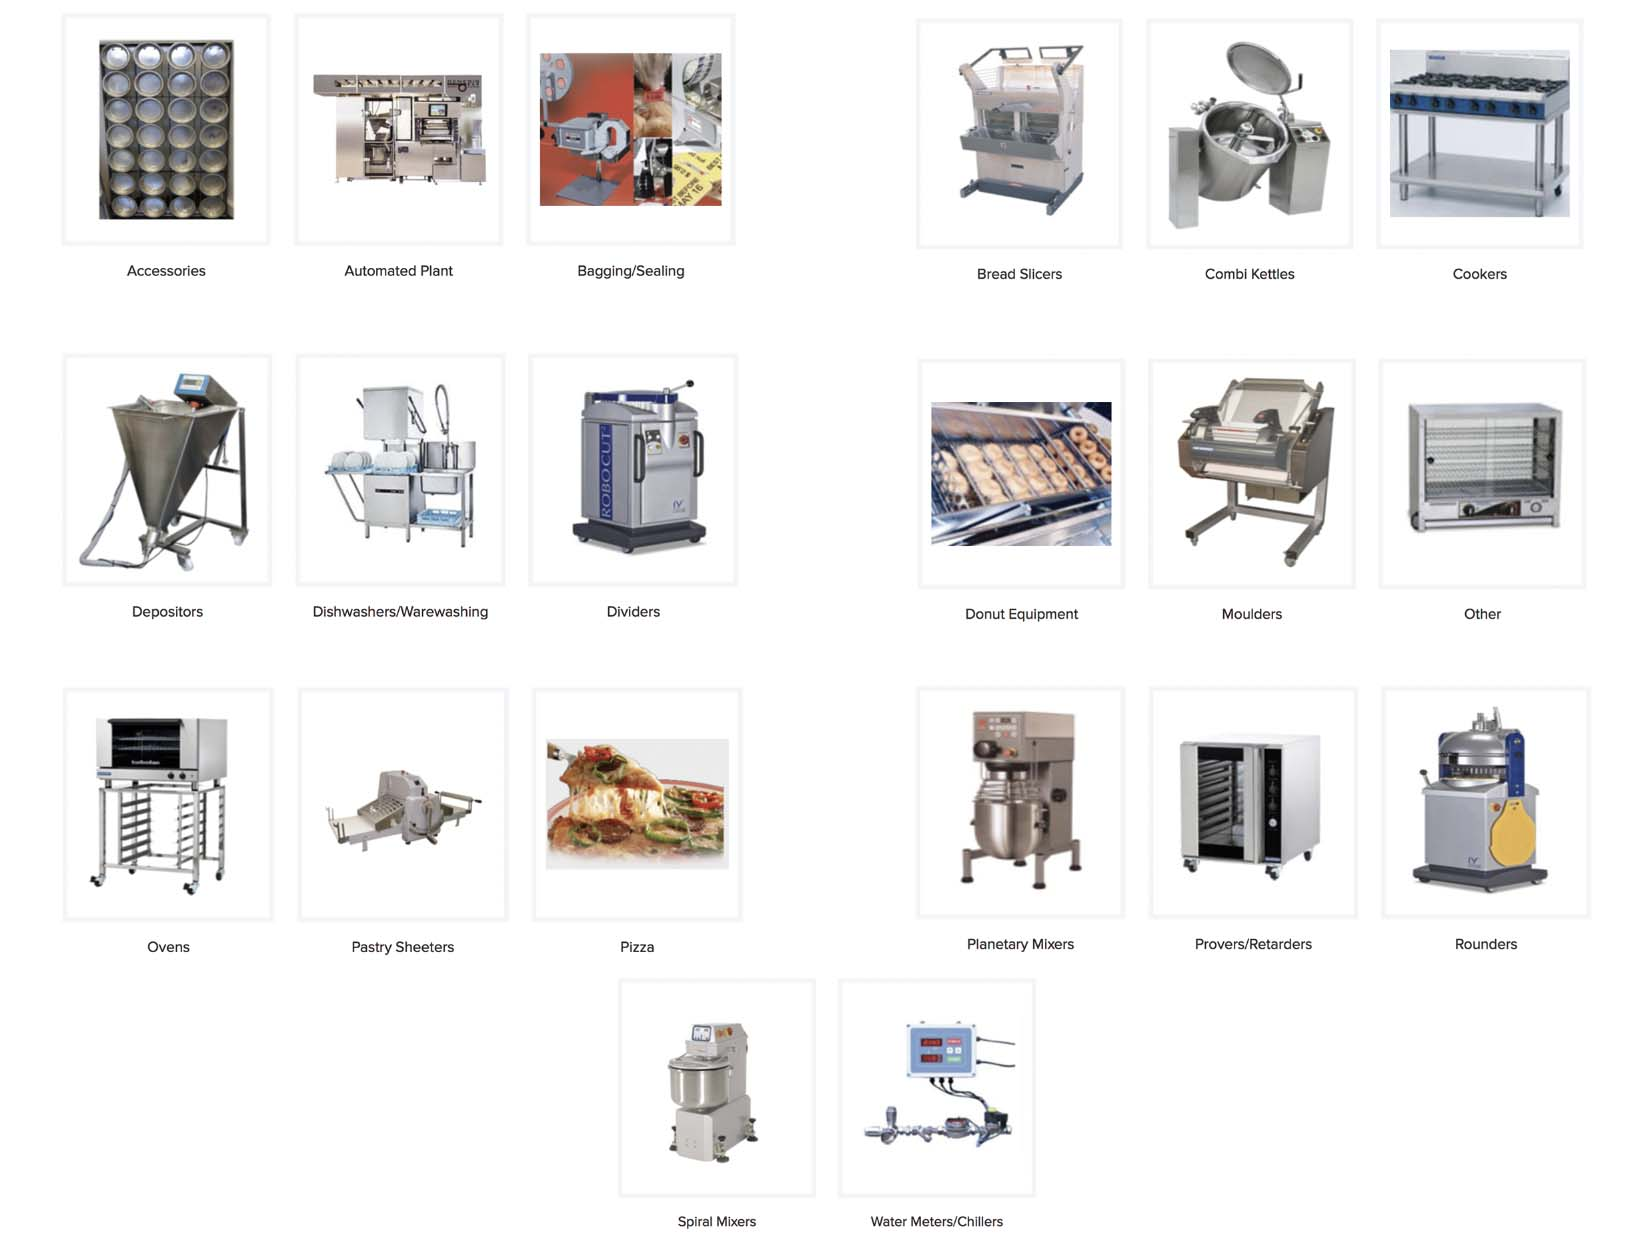 All Bake Services equipment by GaP Solutions